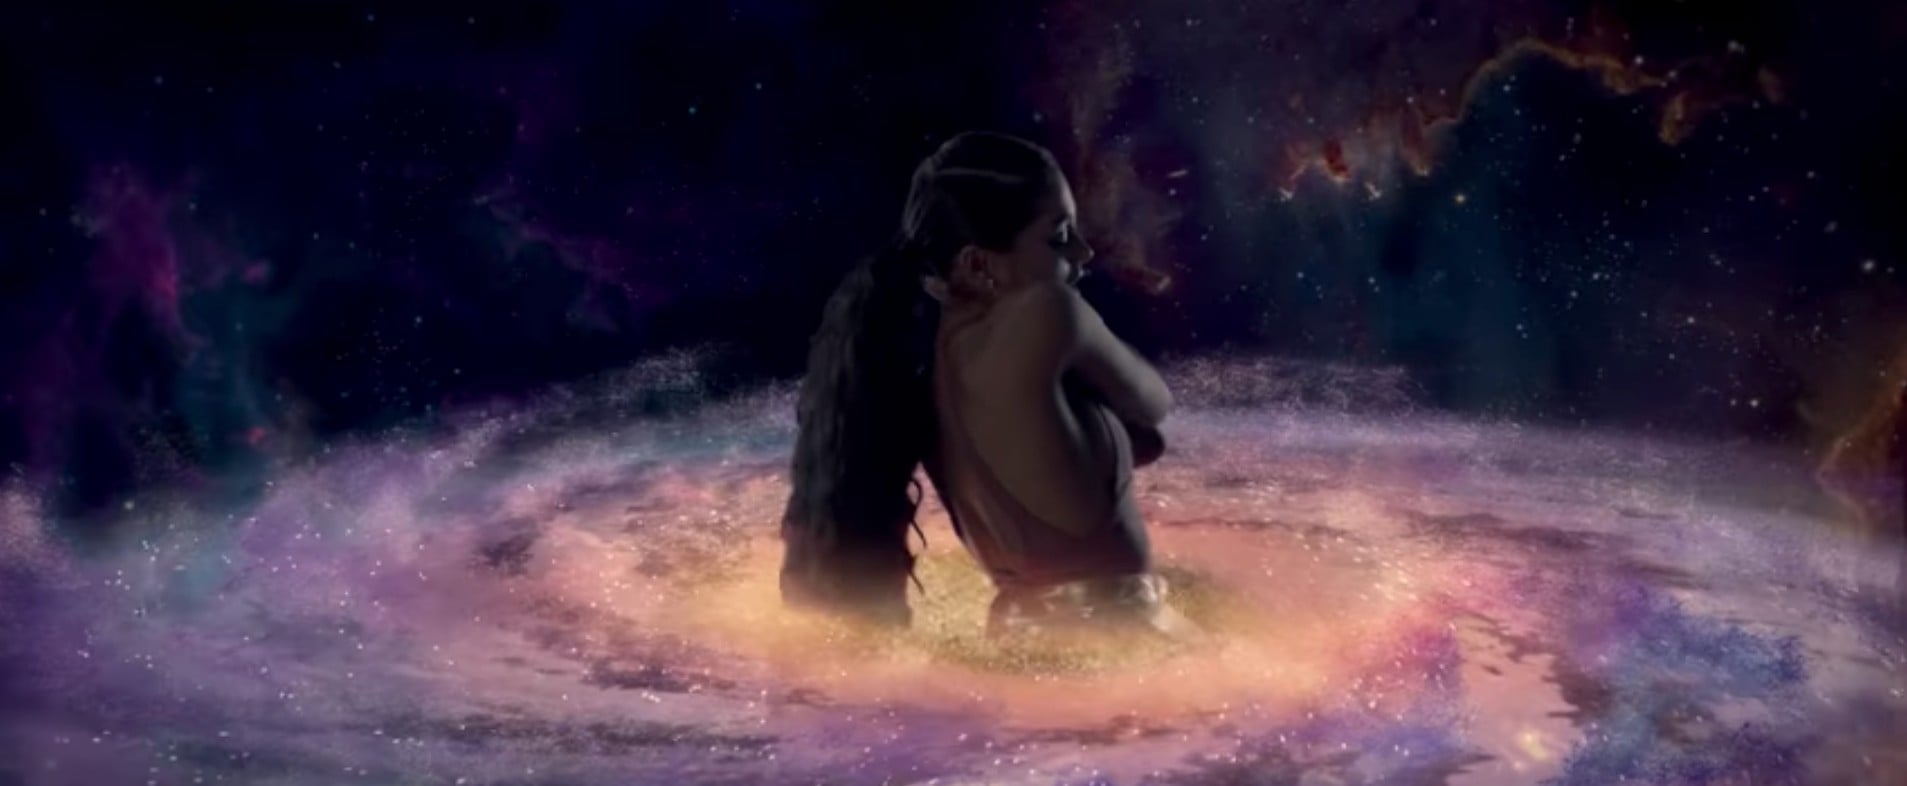 "References in Ariana Grande's ""God Is a Woman"" Music Video"